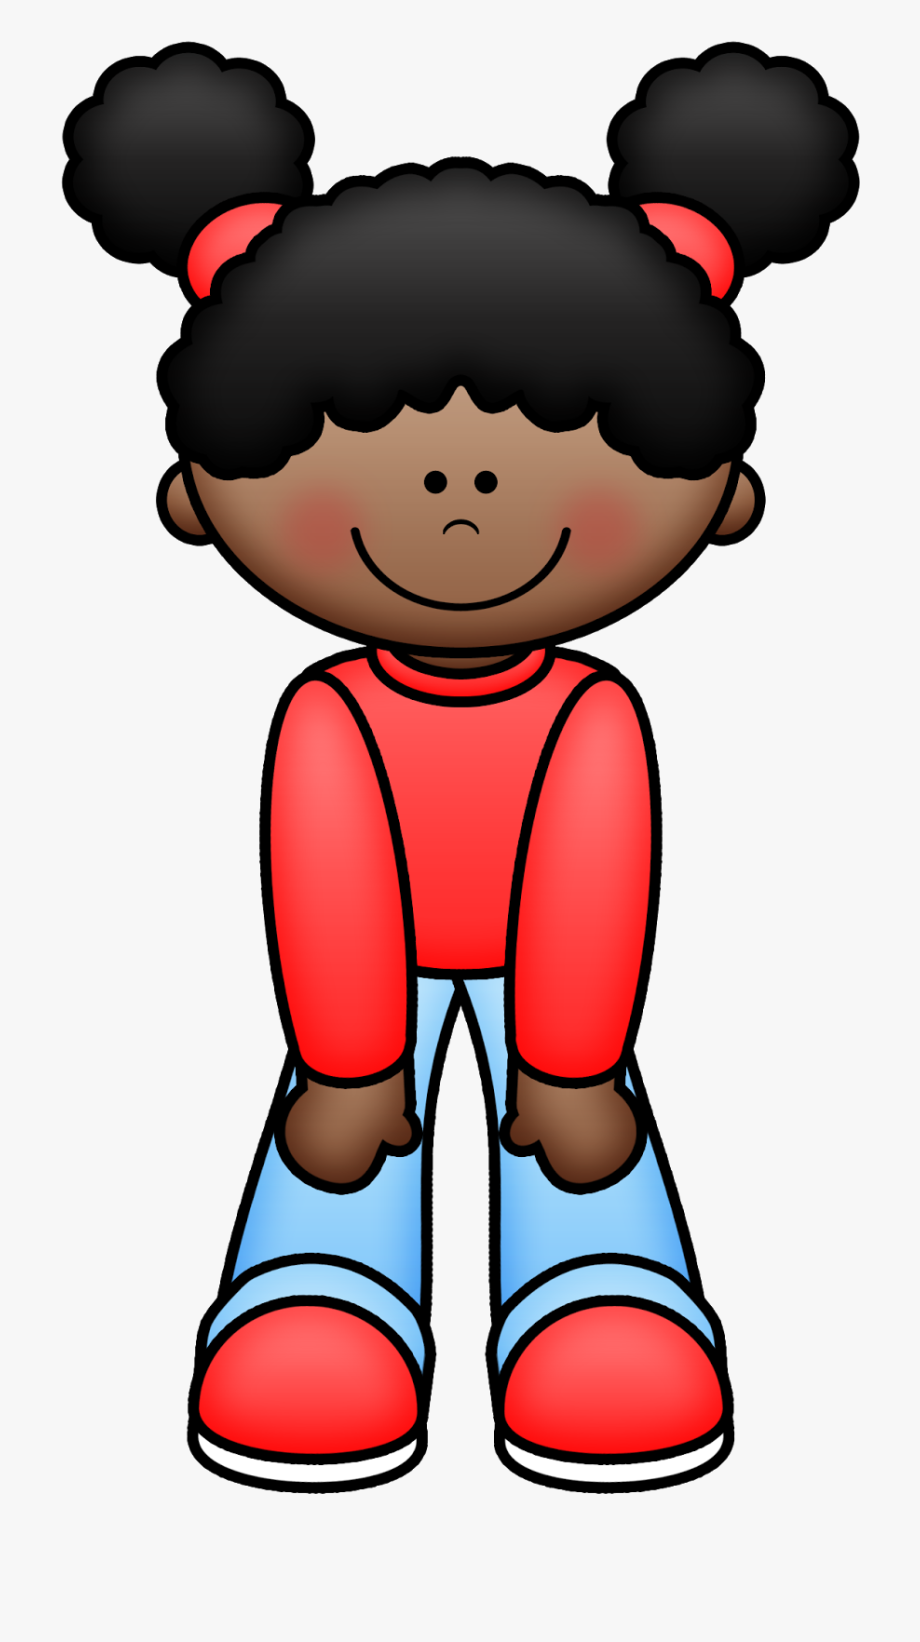 jpg black and white Clap clipart knee. Child hands on knees.